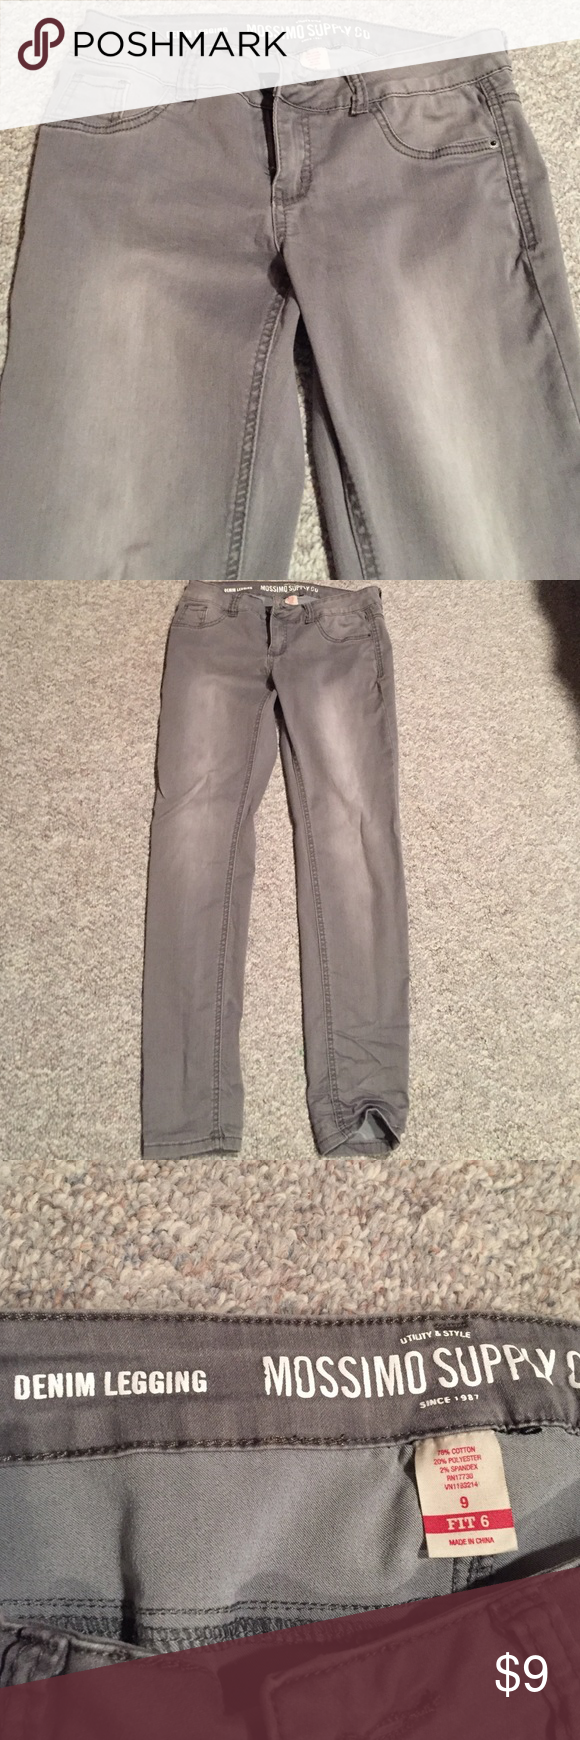 Gray Skinny Pants Light gray skinny jeans from Mossimo Supply Co. Size 9. I wore them a couple times but didn't like them. They are in great shape. Mossimo Supply Co. Pants Skinny